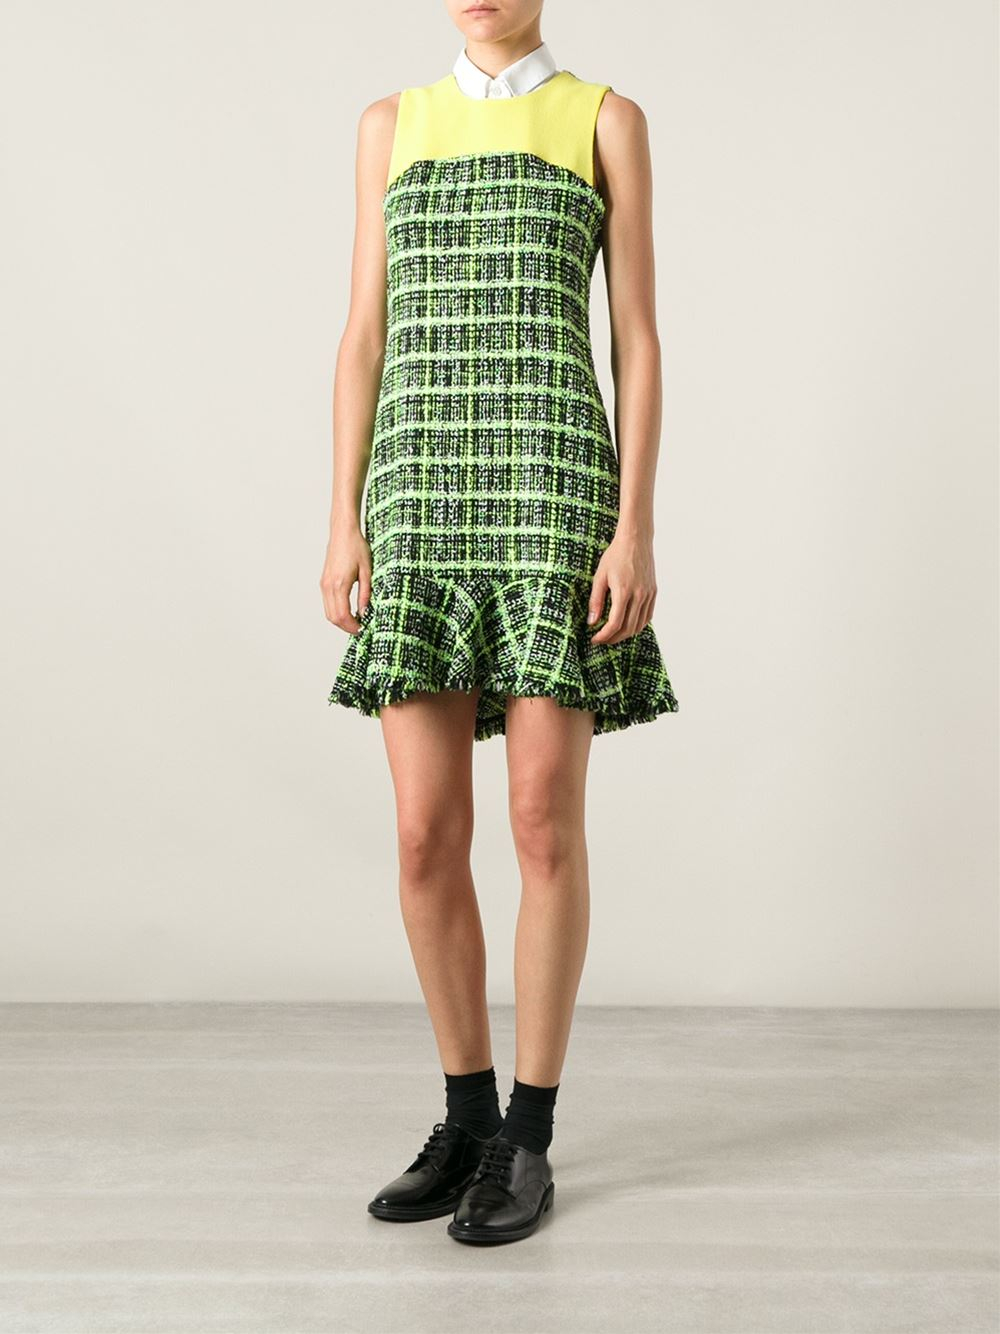 moschino-cheap-chic-green-boucle-knit-dress-product-1-22309247-0-963038930-normal